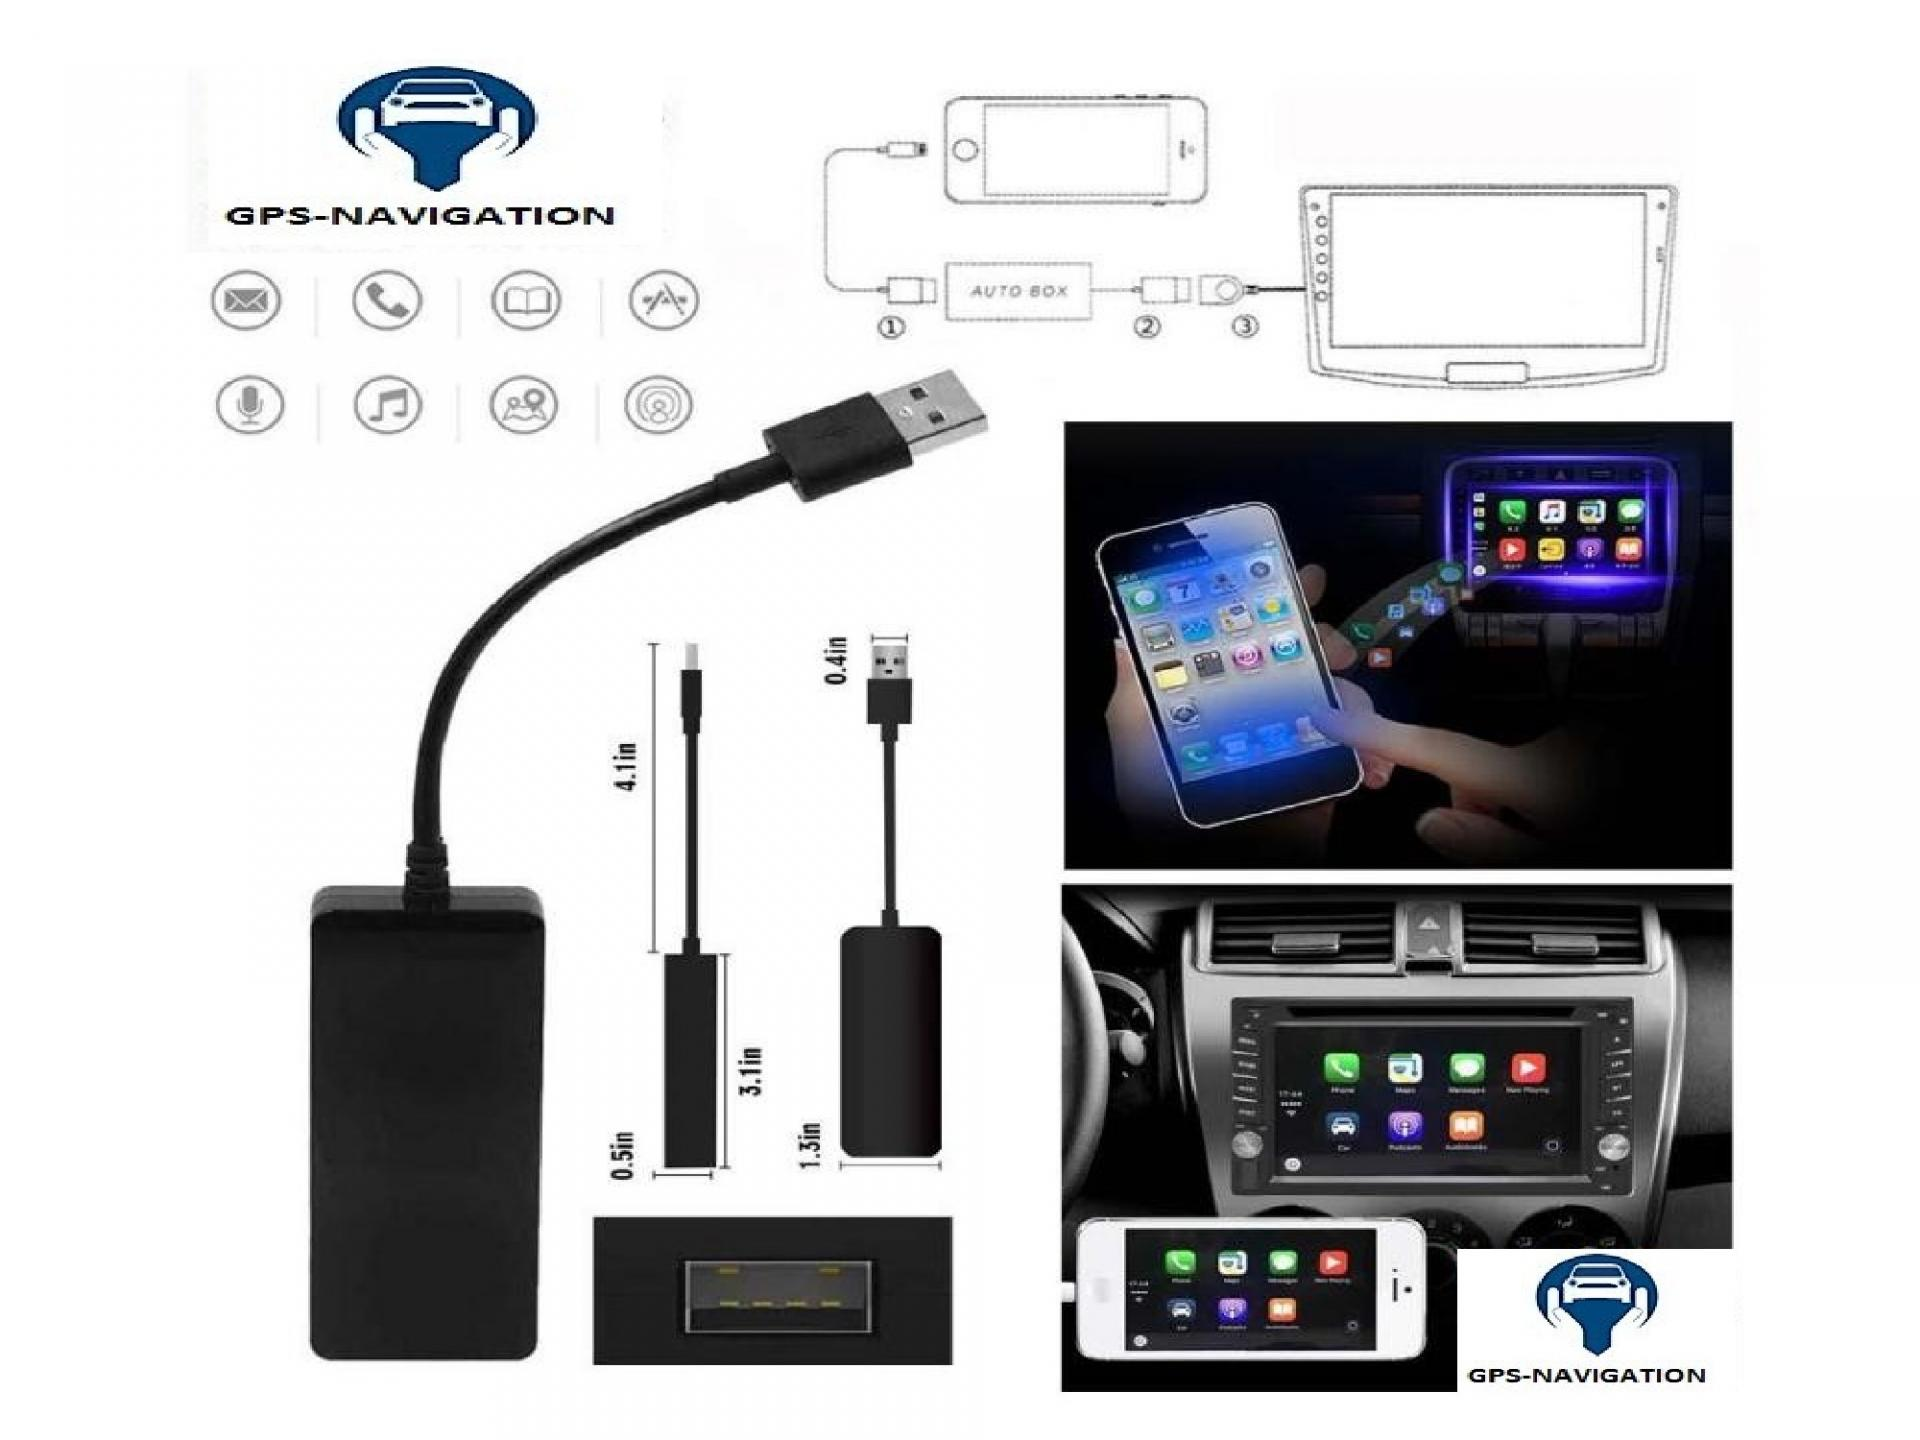 Cle 3g usb modem sd android win ce 2 4ghz usb wifi adaptateur mini gps navigation fr iphone apple car play android dongle usb 2